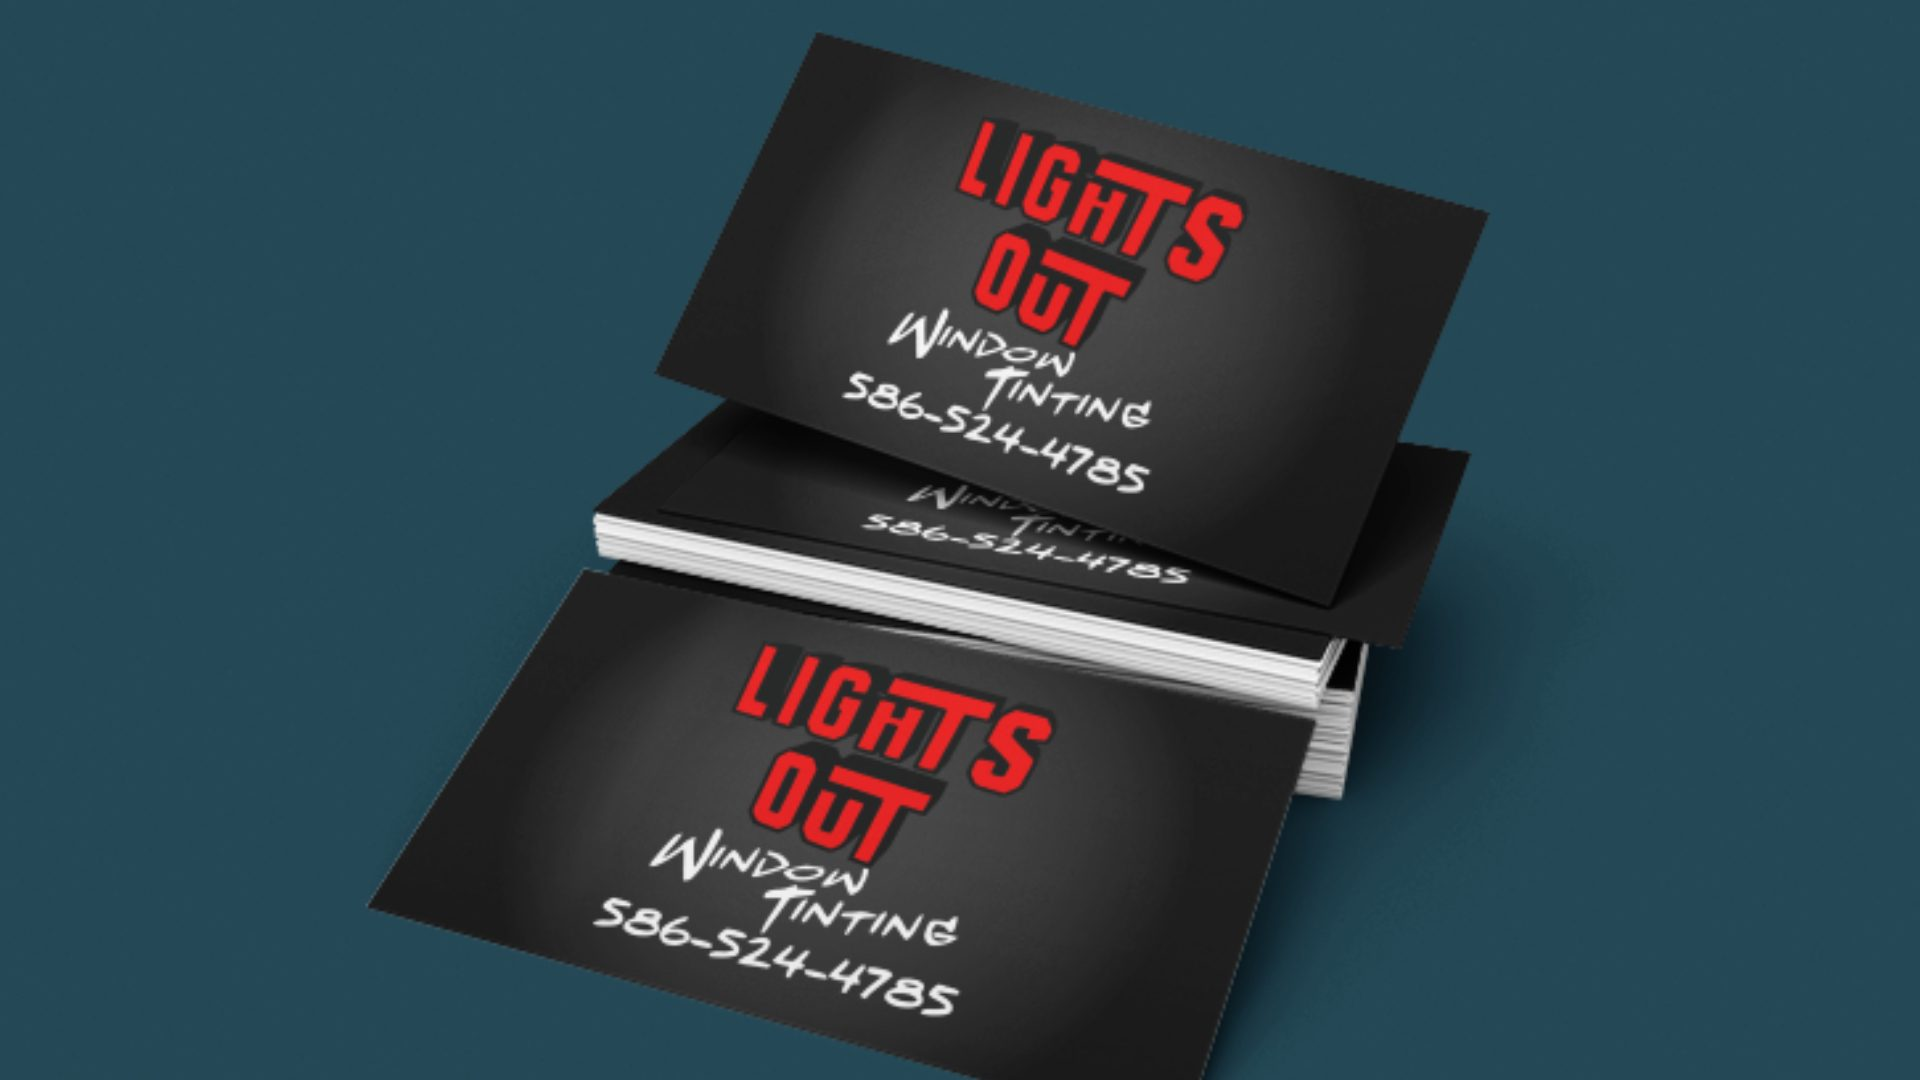 Lights Out Window Tinting - Business Card Mockup (5)